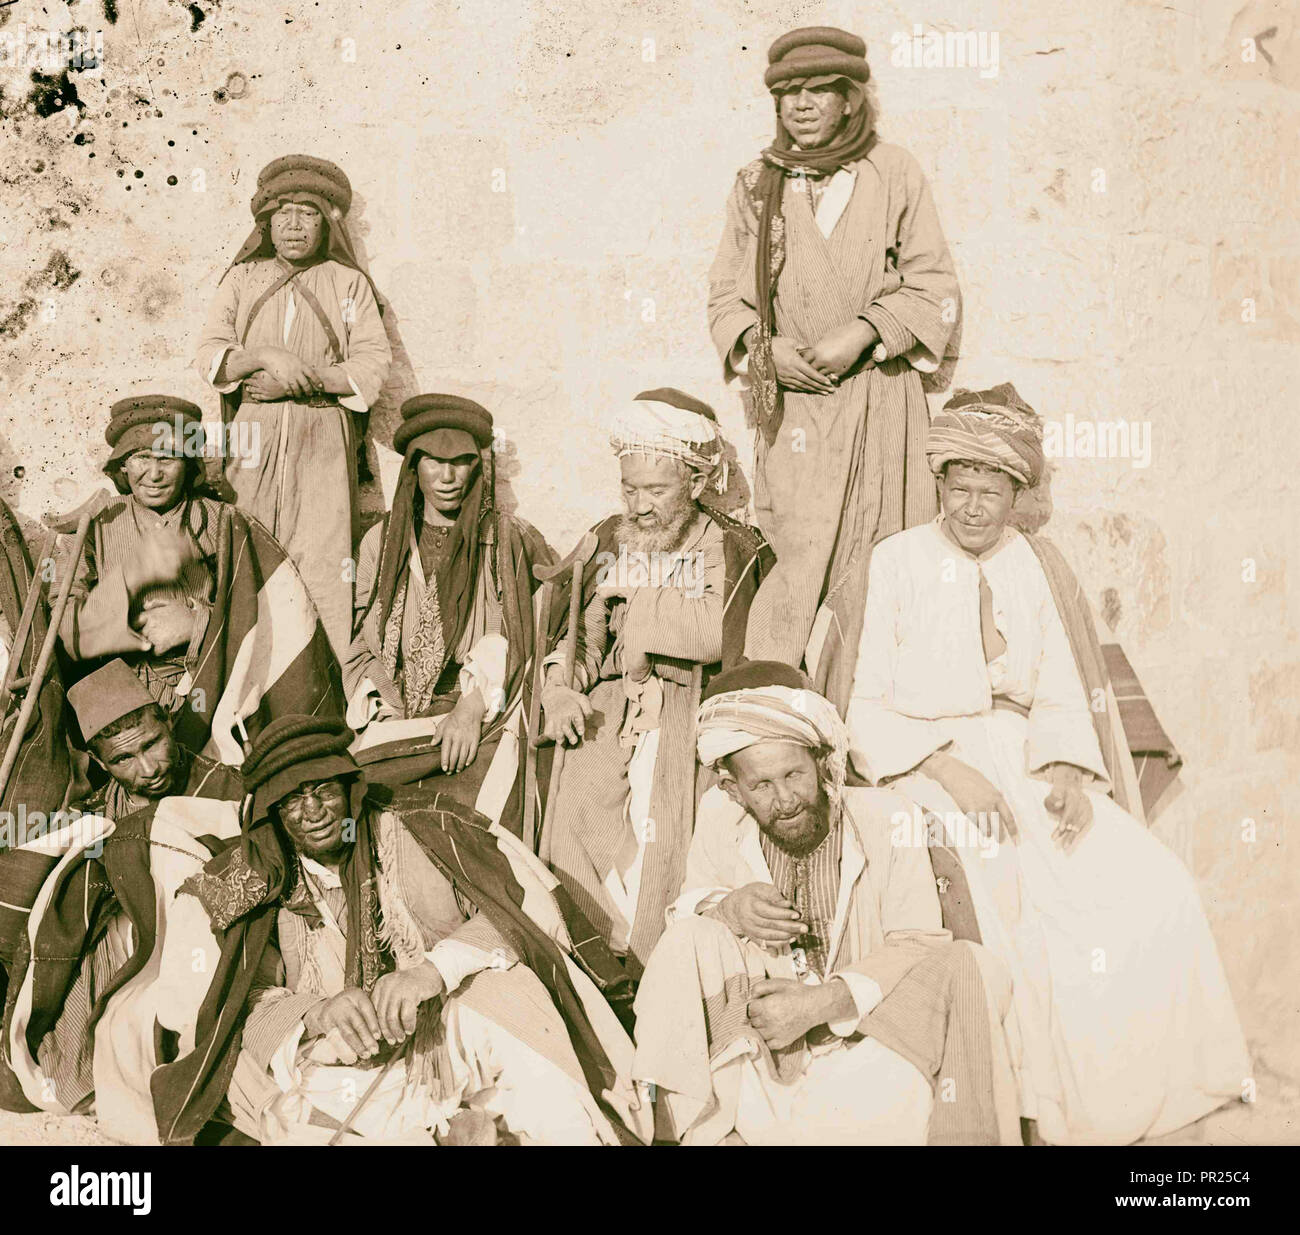 Costumes, characters and ceremonies, Lepers. 1898, Middle East, Israel and/or Palestine - Stock Image